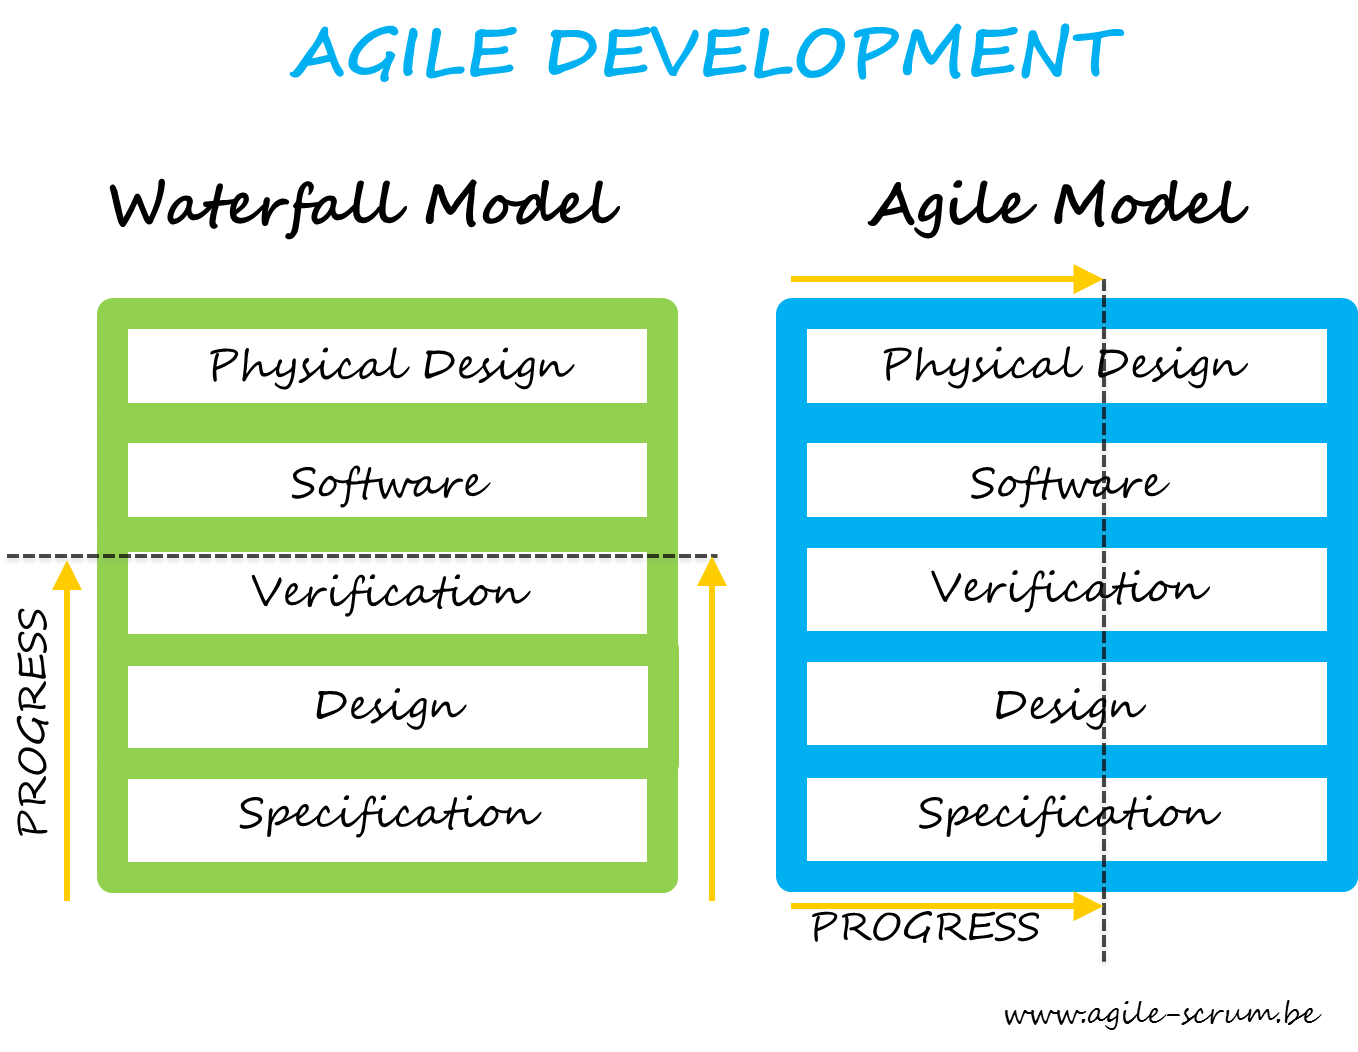 Agile development agile scrum for Project management agile waterfall